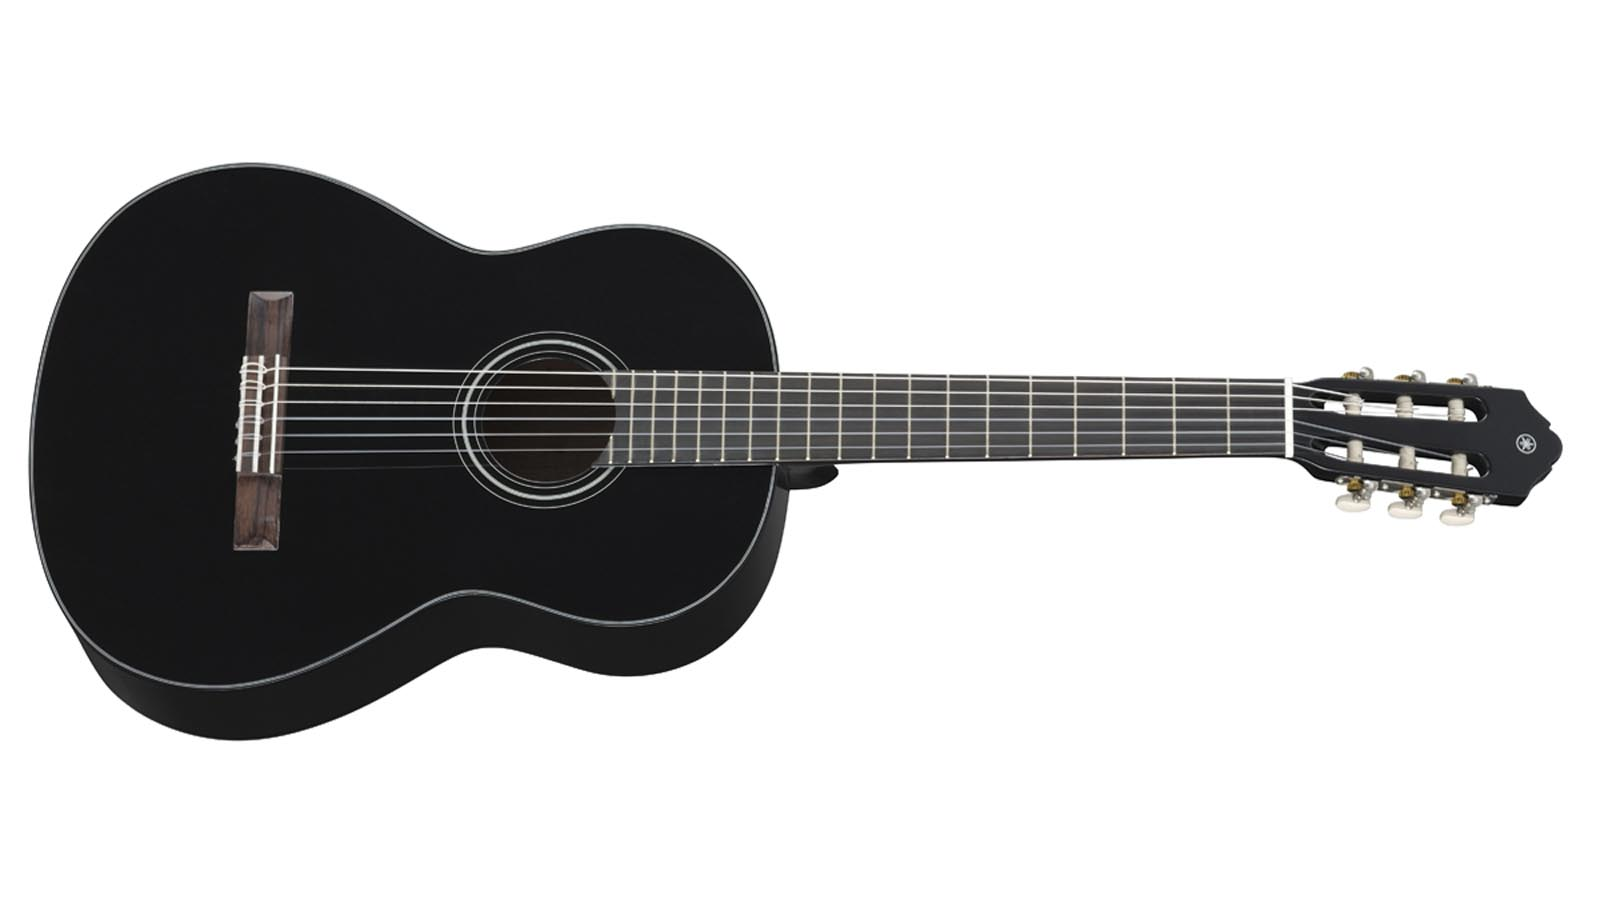 Yamaha C-40 II Black Konzertgitarre limited